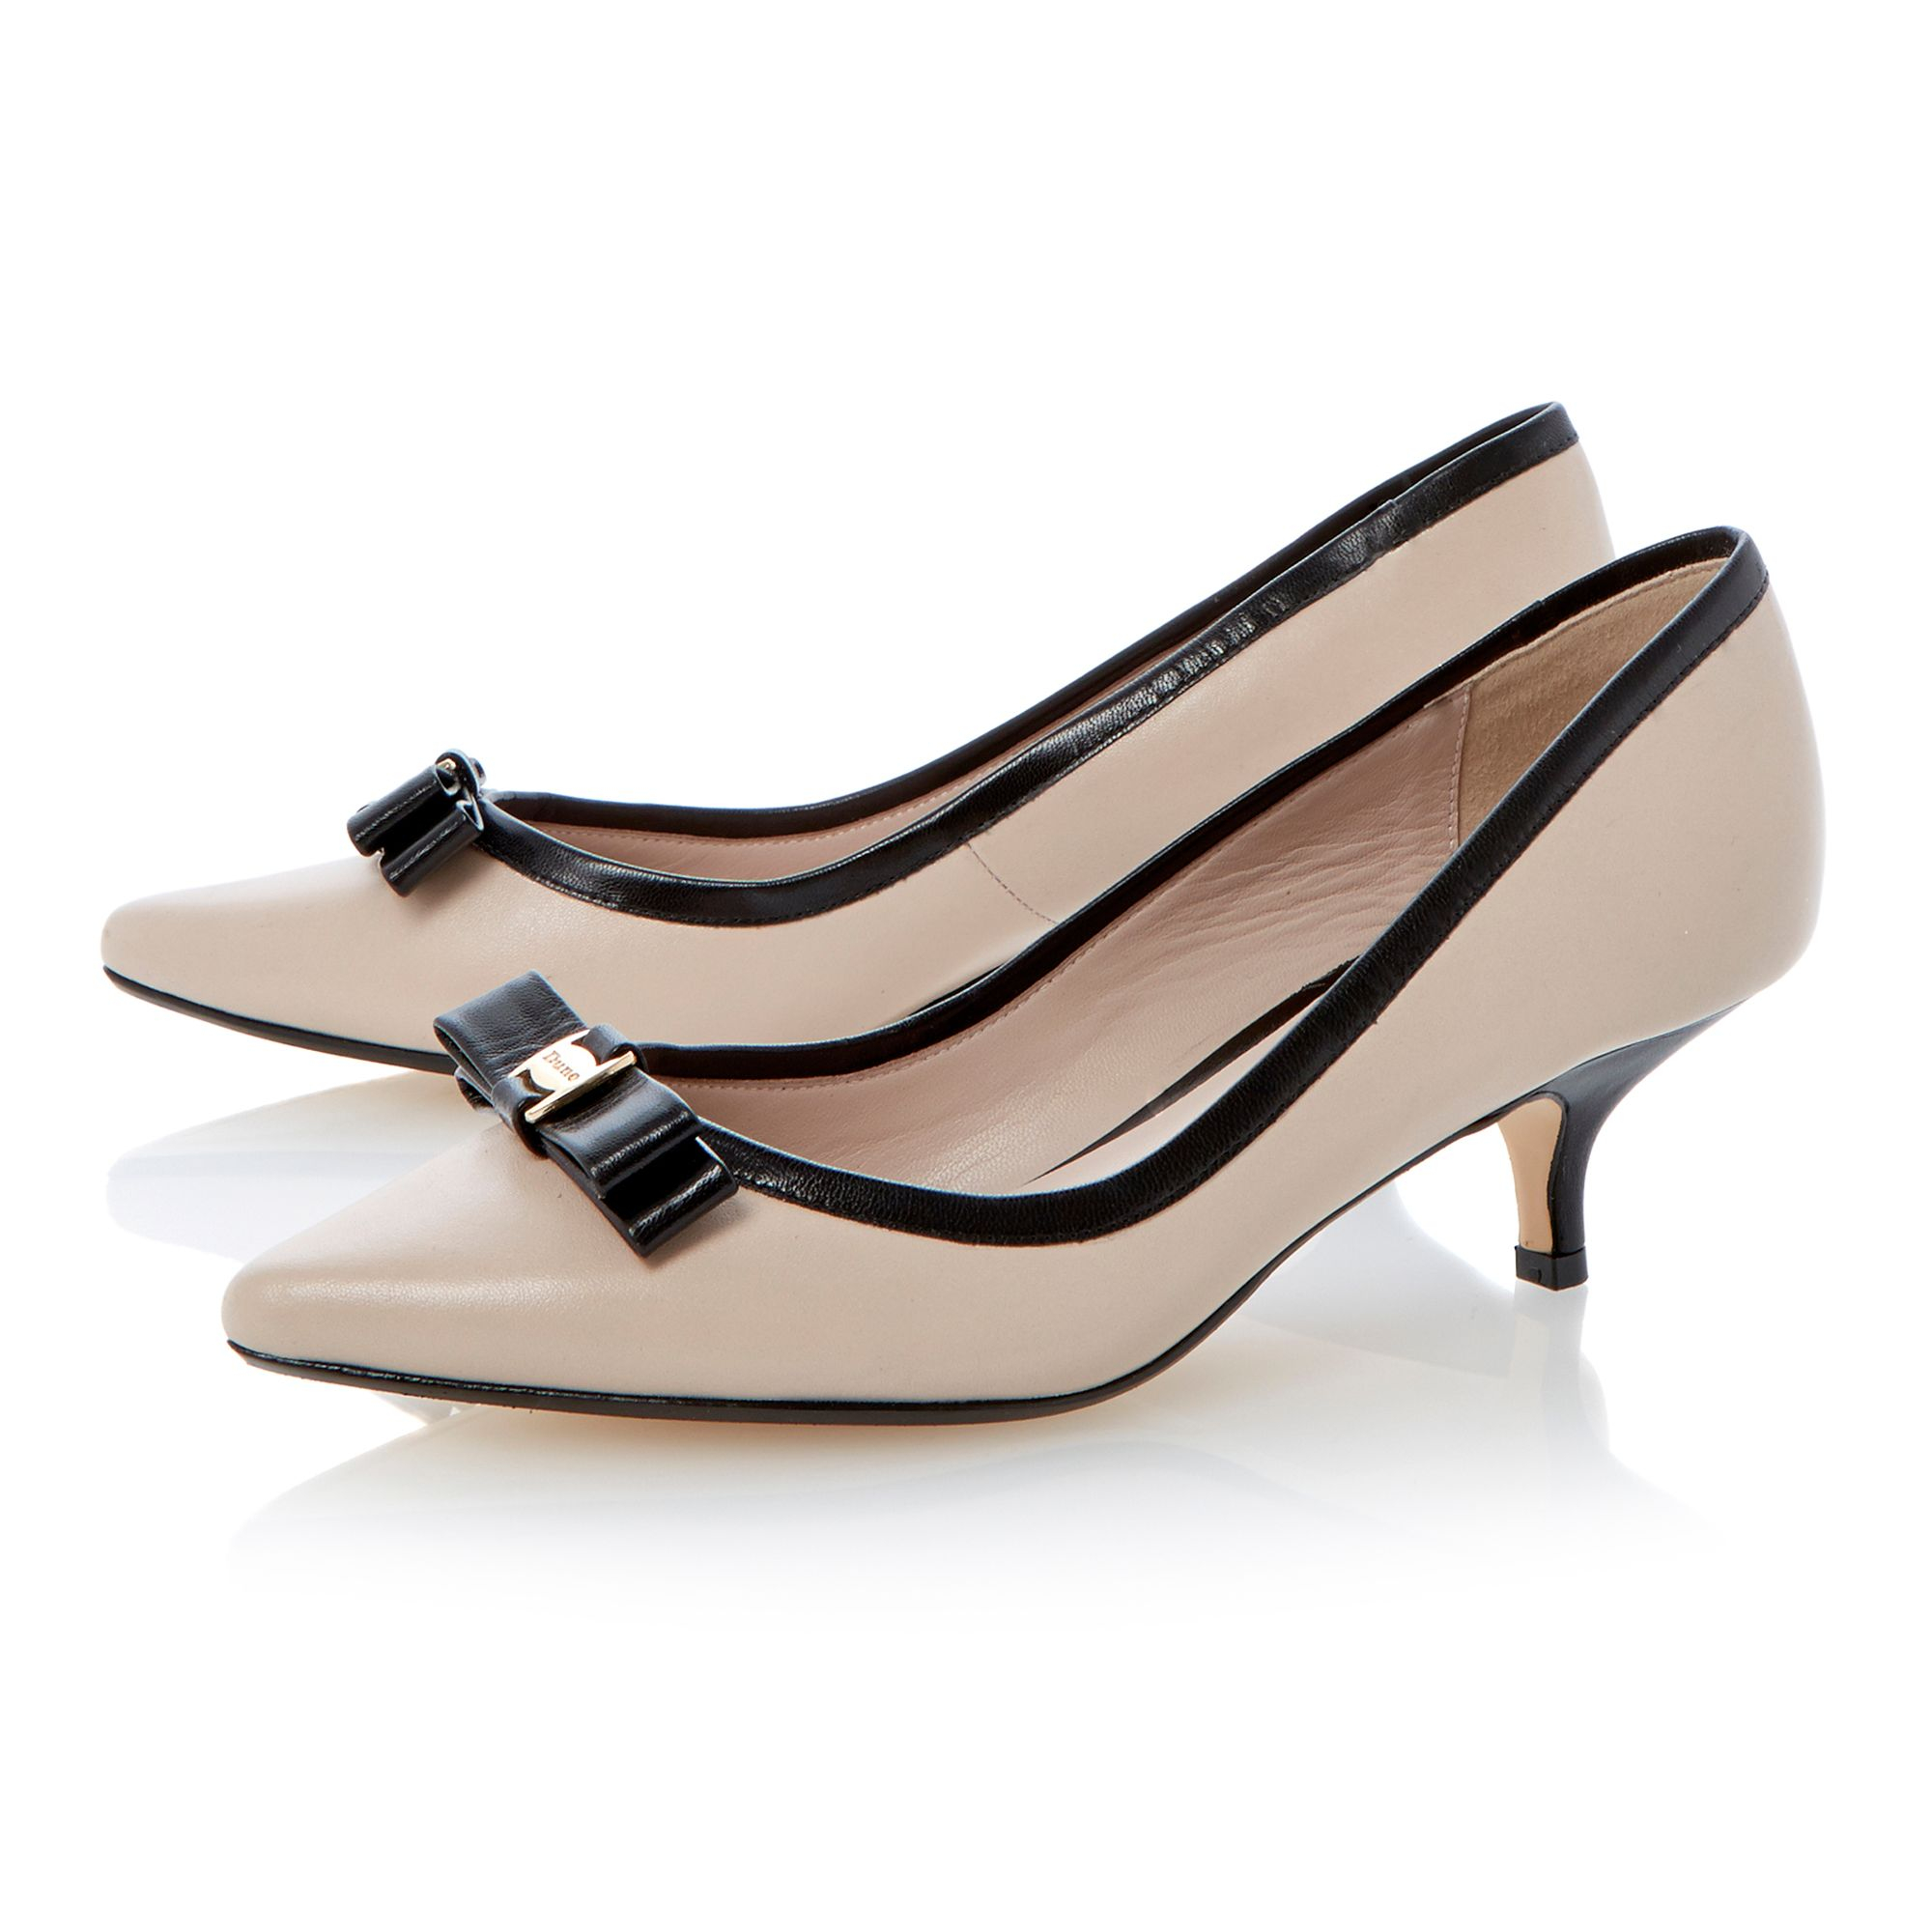 Lyst - Dune Alfa Leather Kitten Heel Pointed Toe Court Shoes in ...